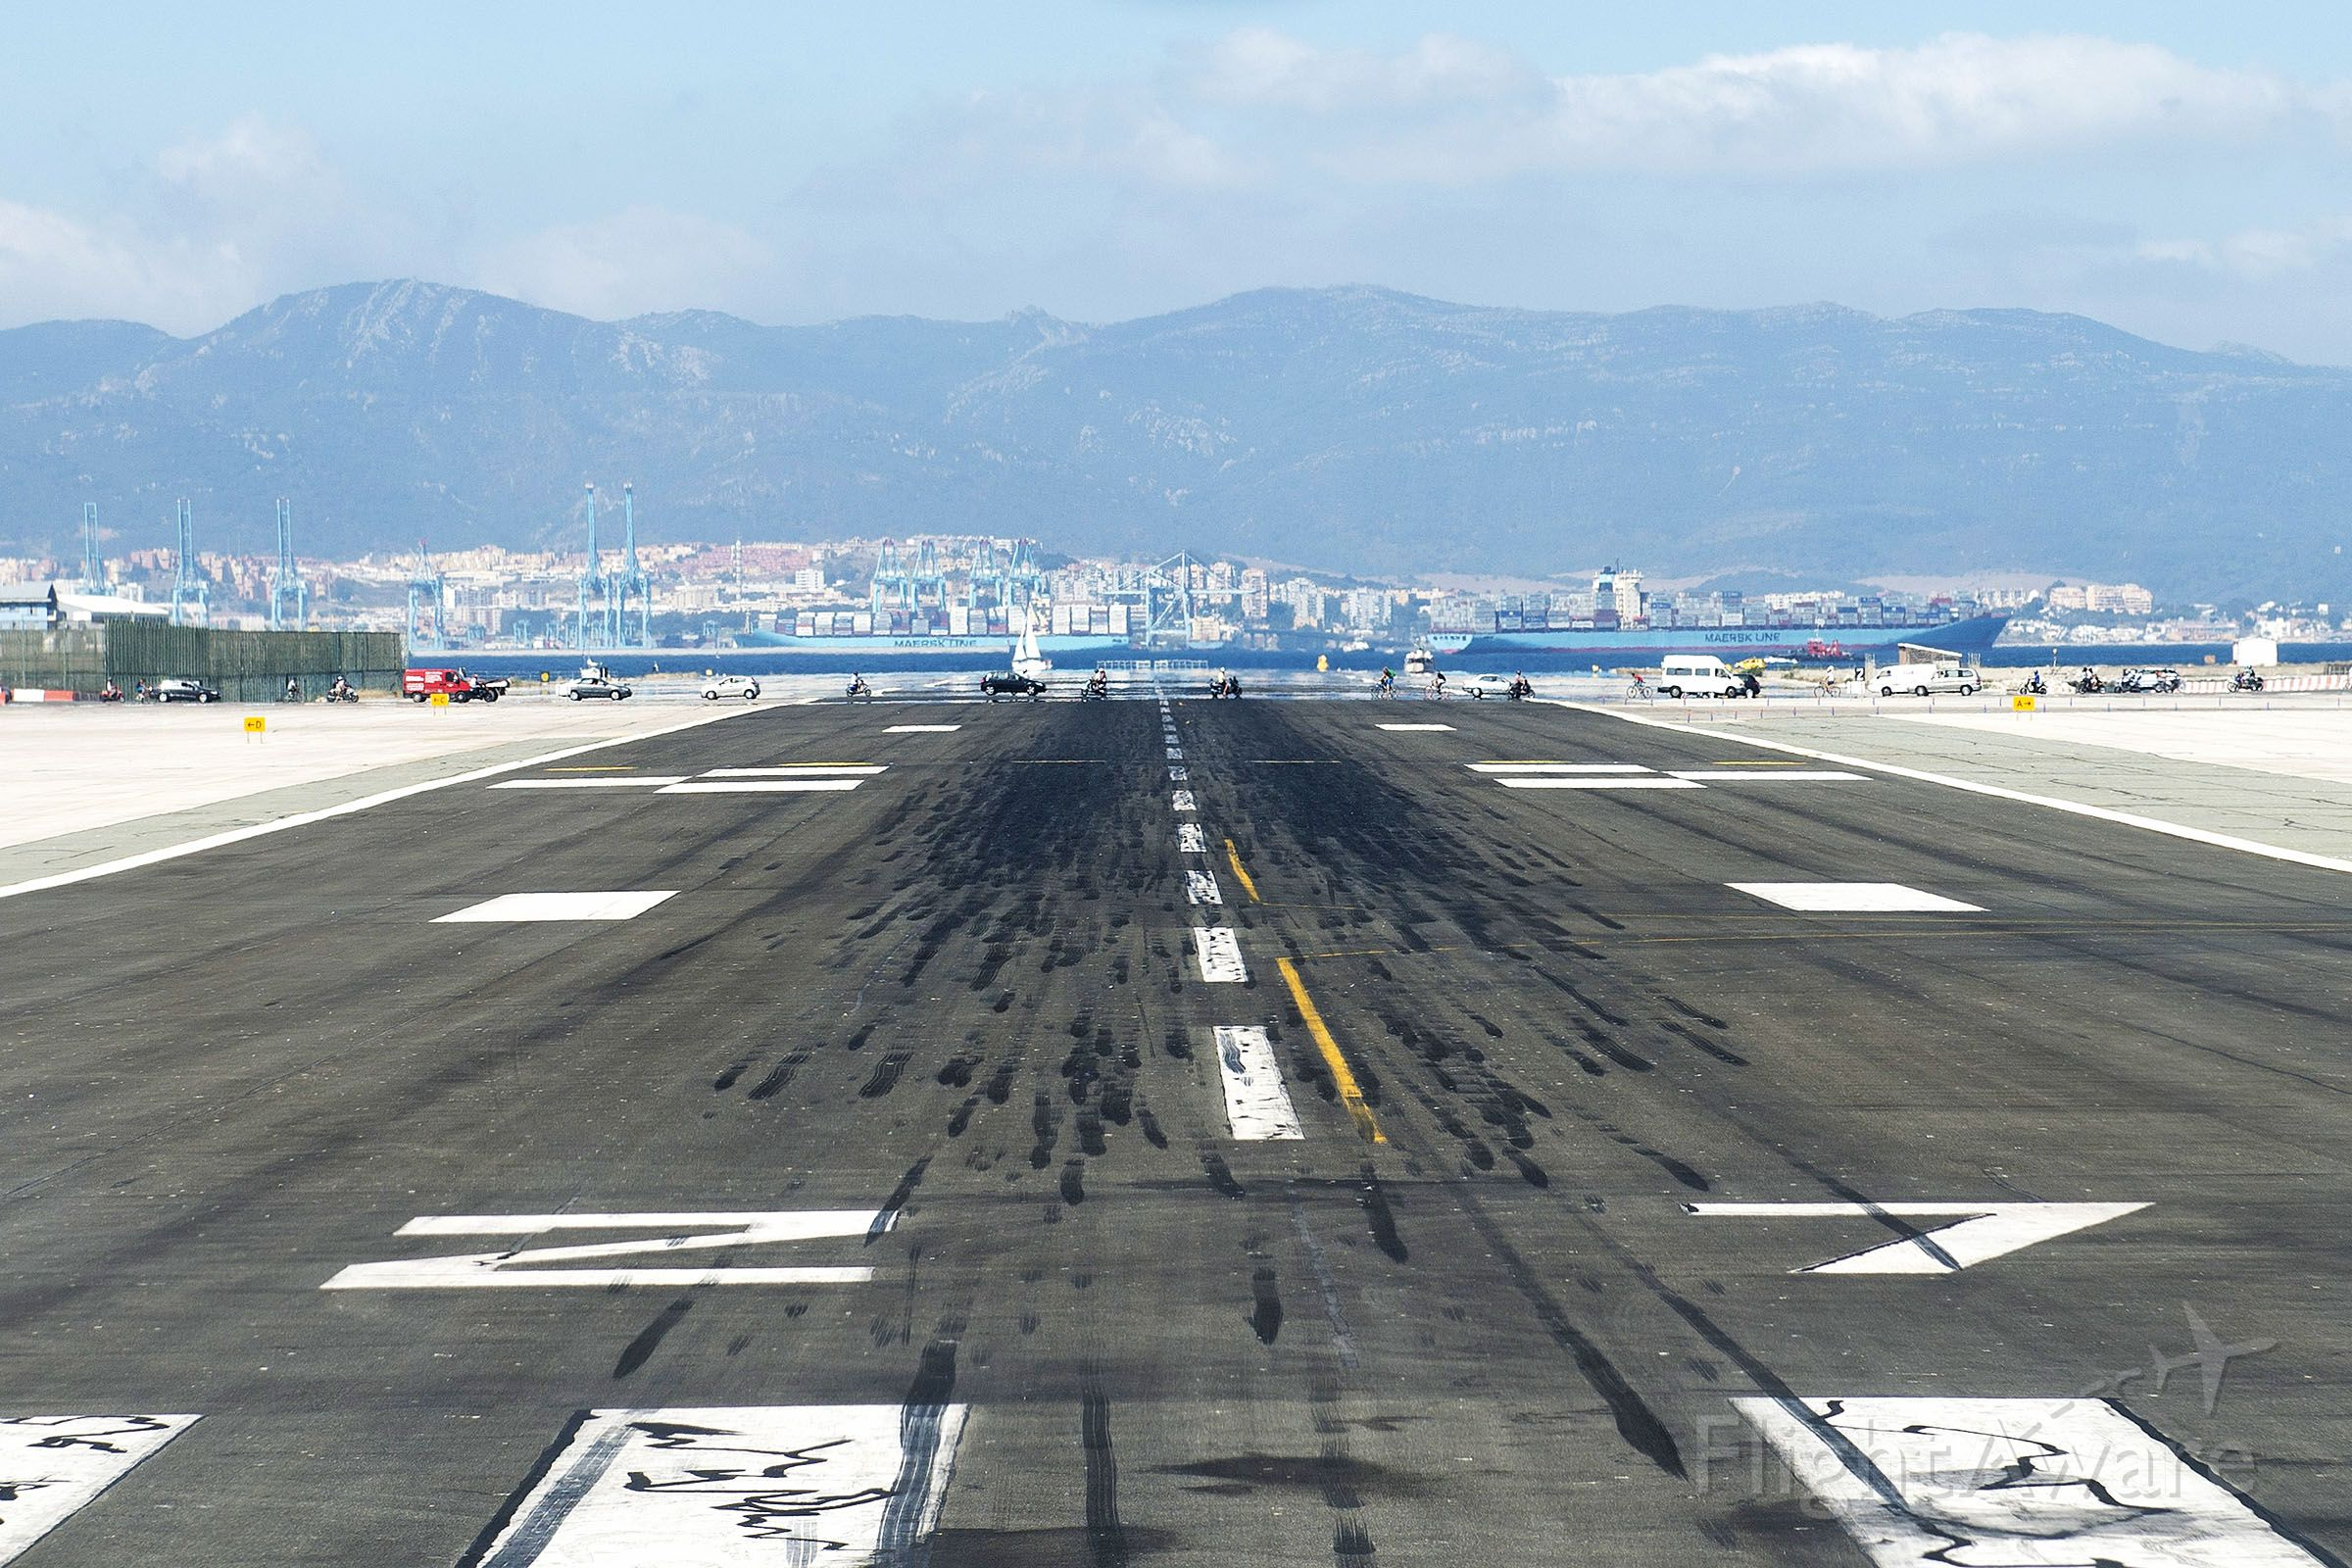 — — - Lined up on 27 for departure to EGHI - slight delay with vehicles crossing runway due to traffic lights being on GREEN! Amazing sight with Gibraltar Harbour and large ships beyond the end of the runway.